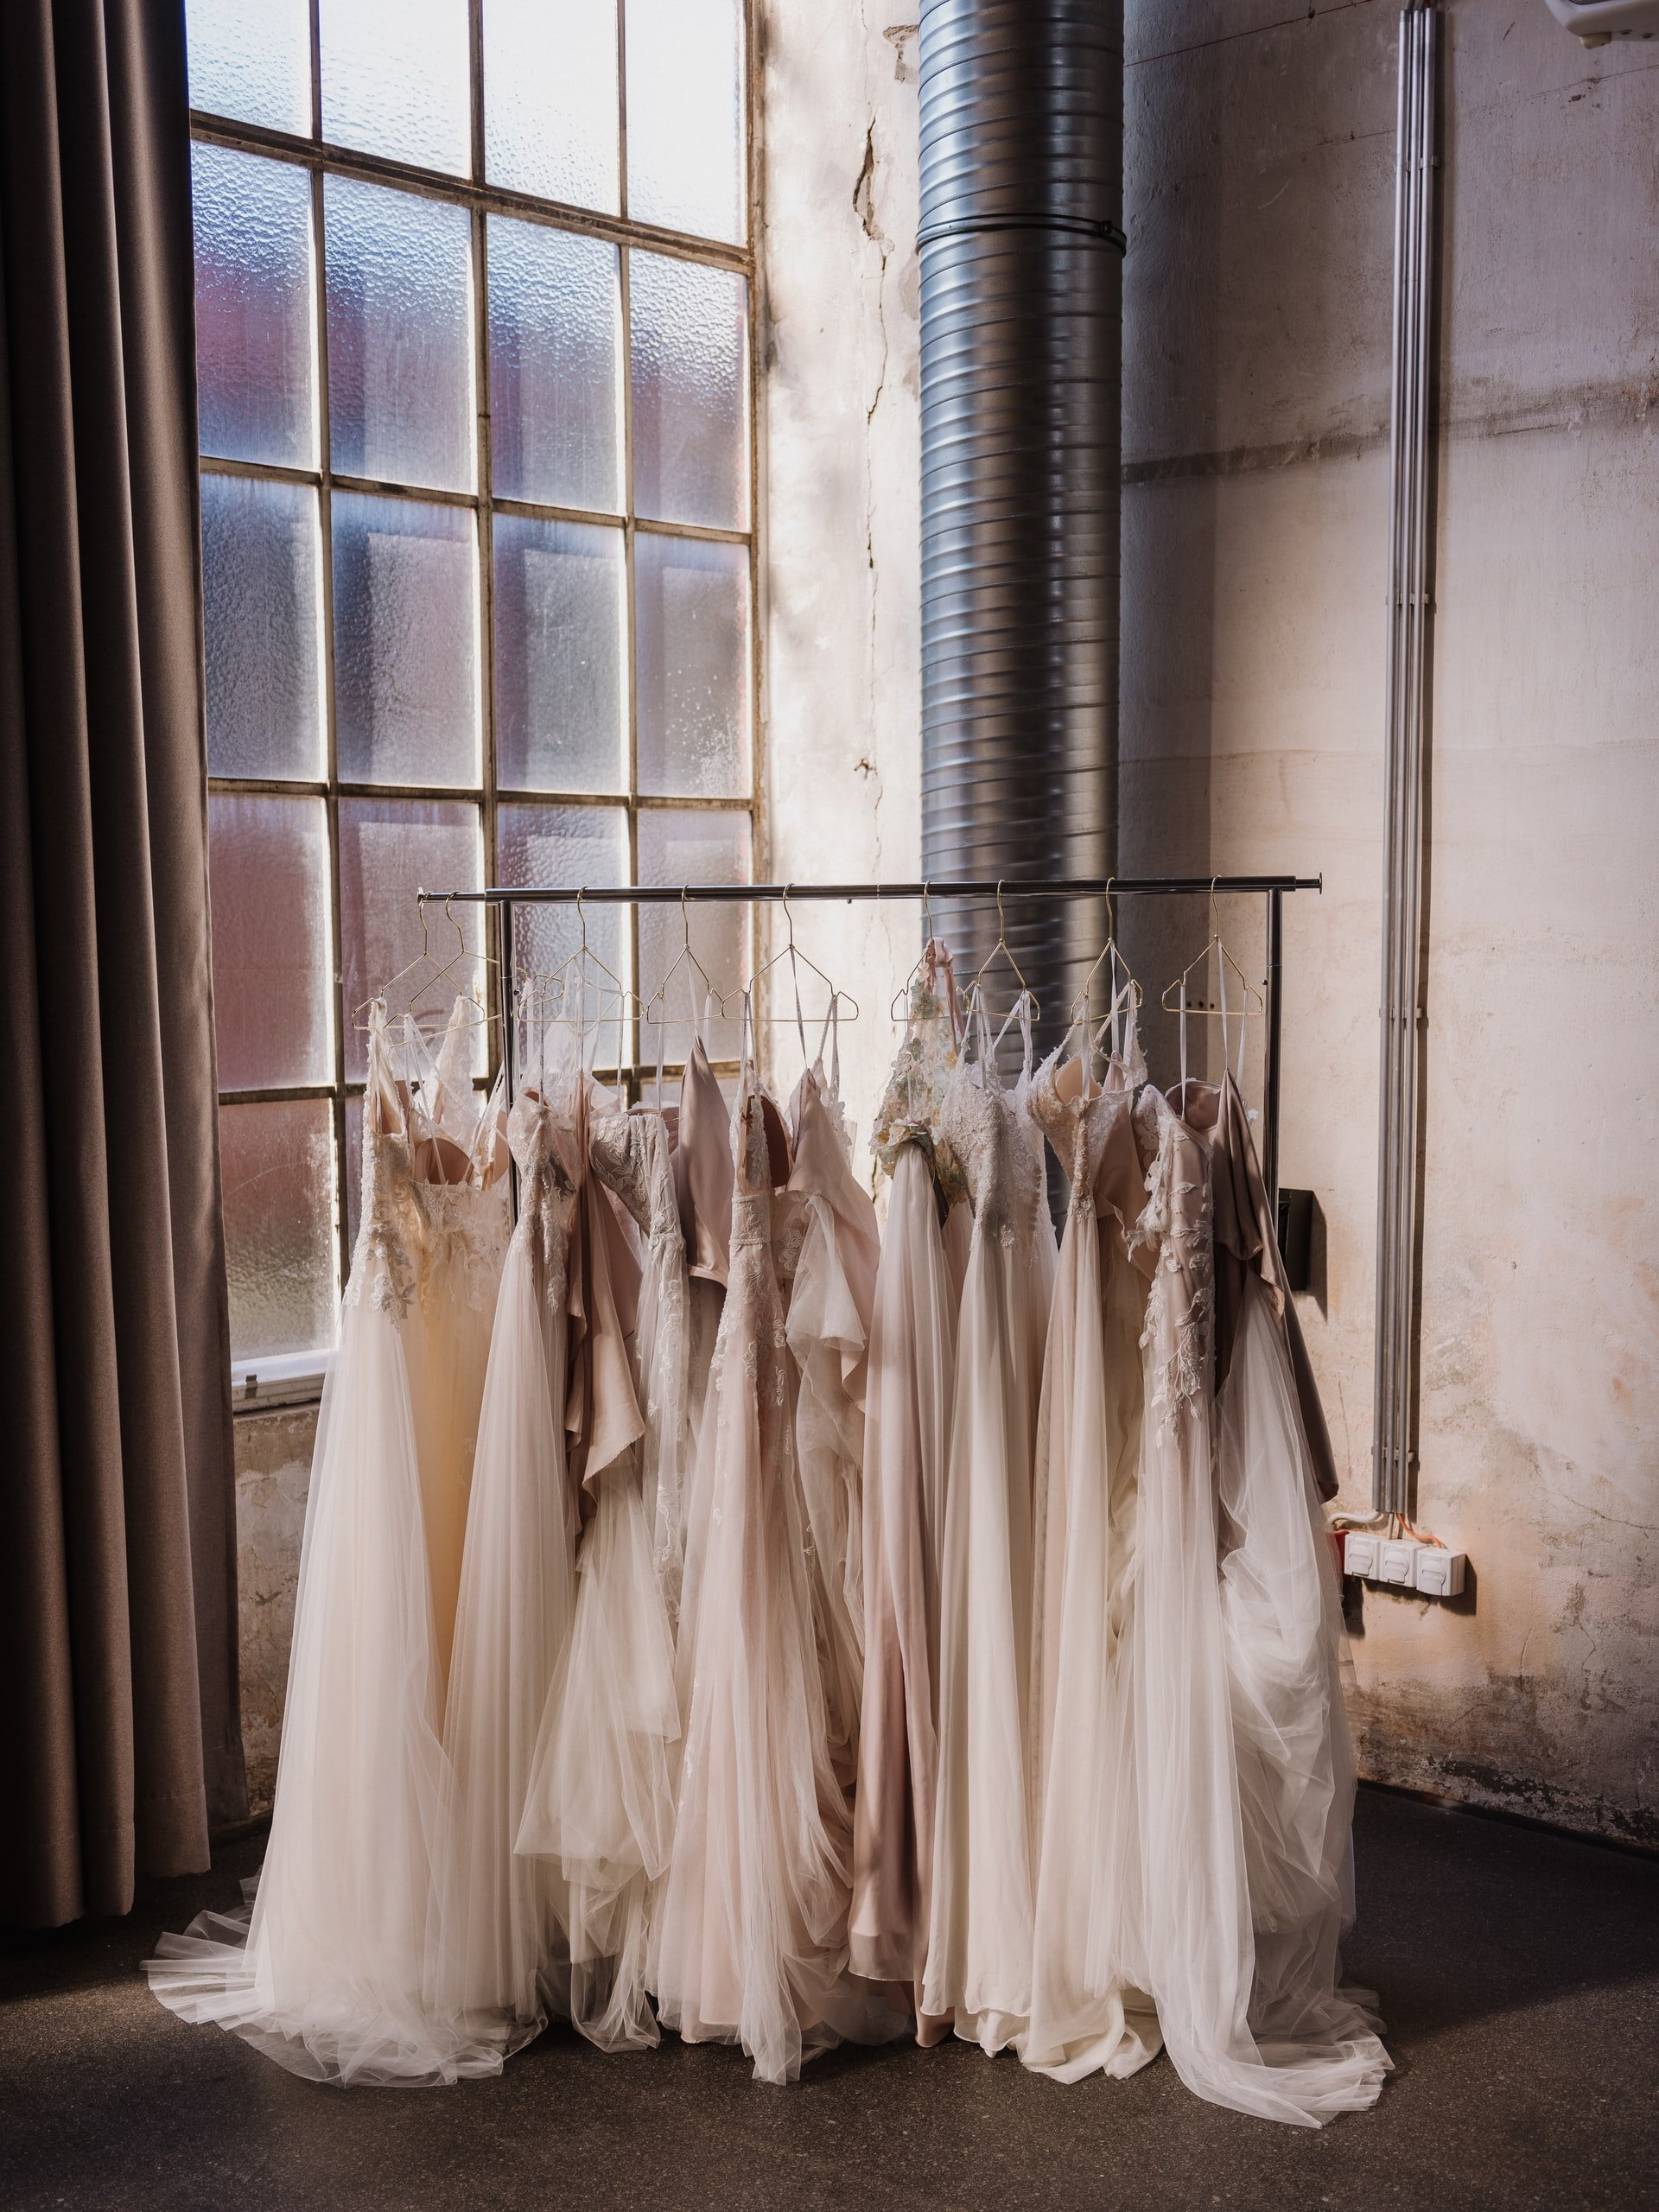 Stella tried to reason with her mother-in-law while wedding dress shopping. | Source: Unsplash